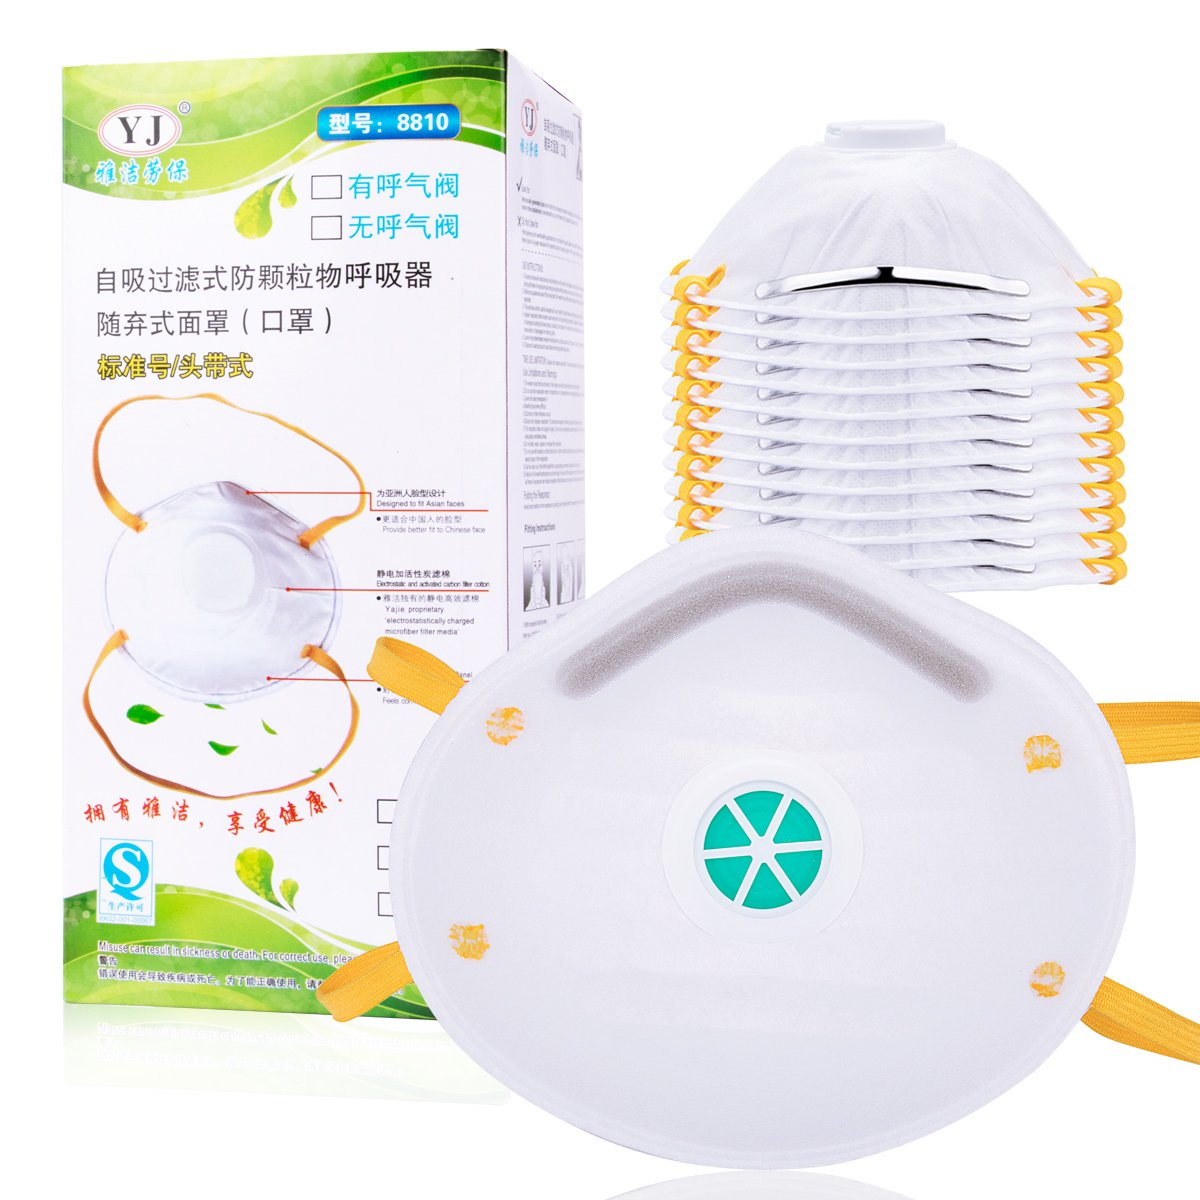 20pcs Particulate Respirator with Exhalation Valve Dust Mask Personal Protective Breathing Mask Equipment N95 for Home Cleaning Construction DIY Projects Apince